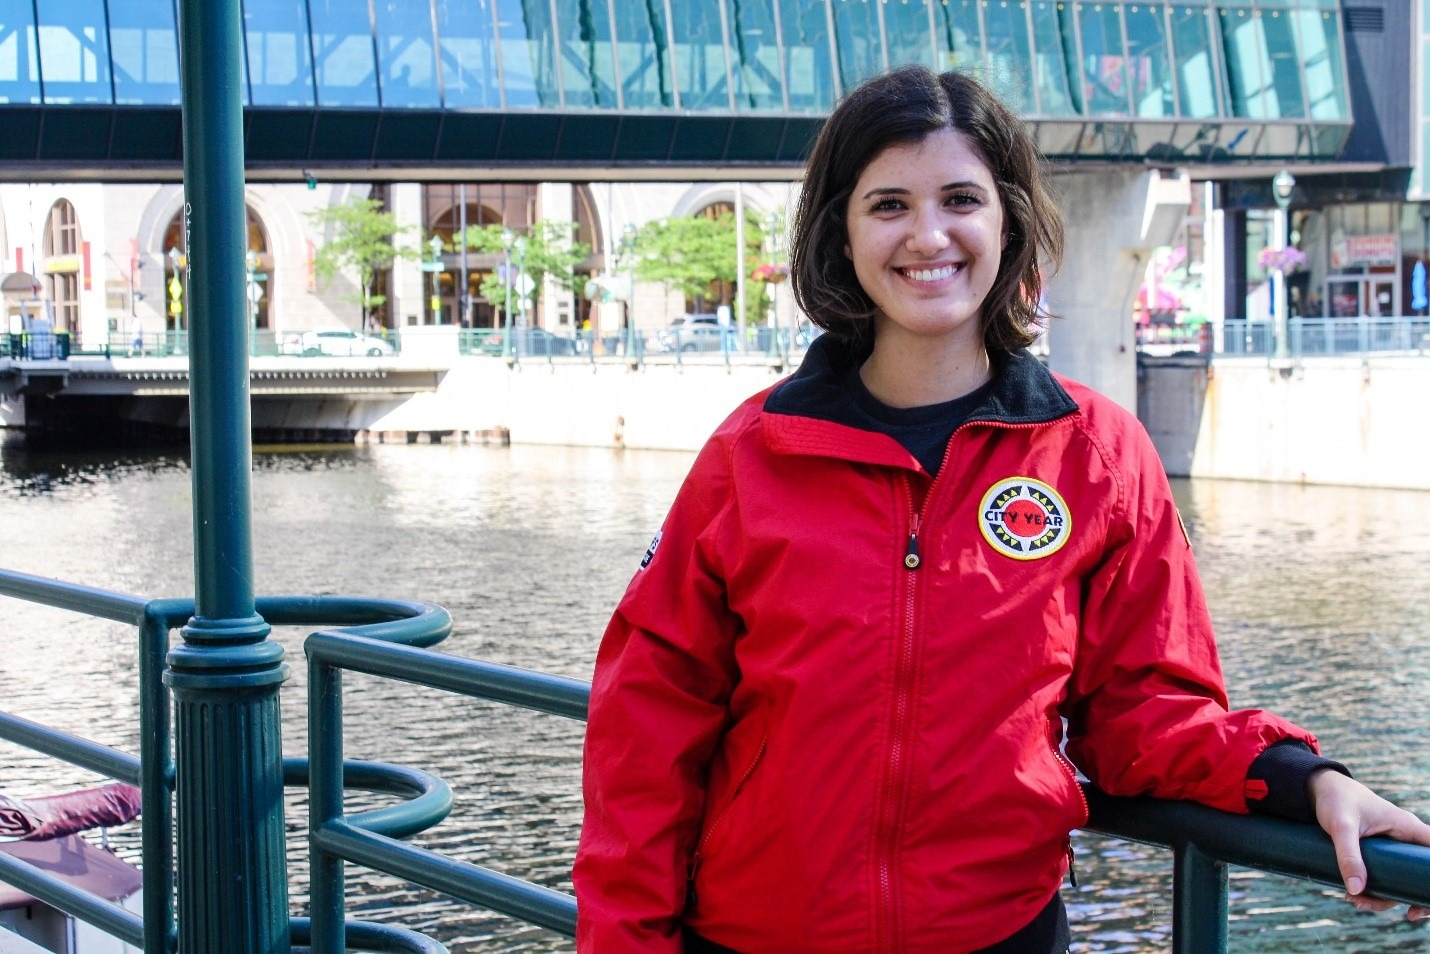 City Year AmeriCorps member shares her service journey